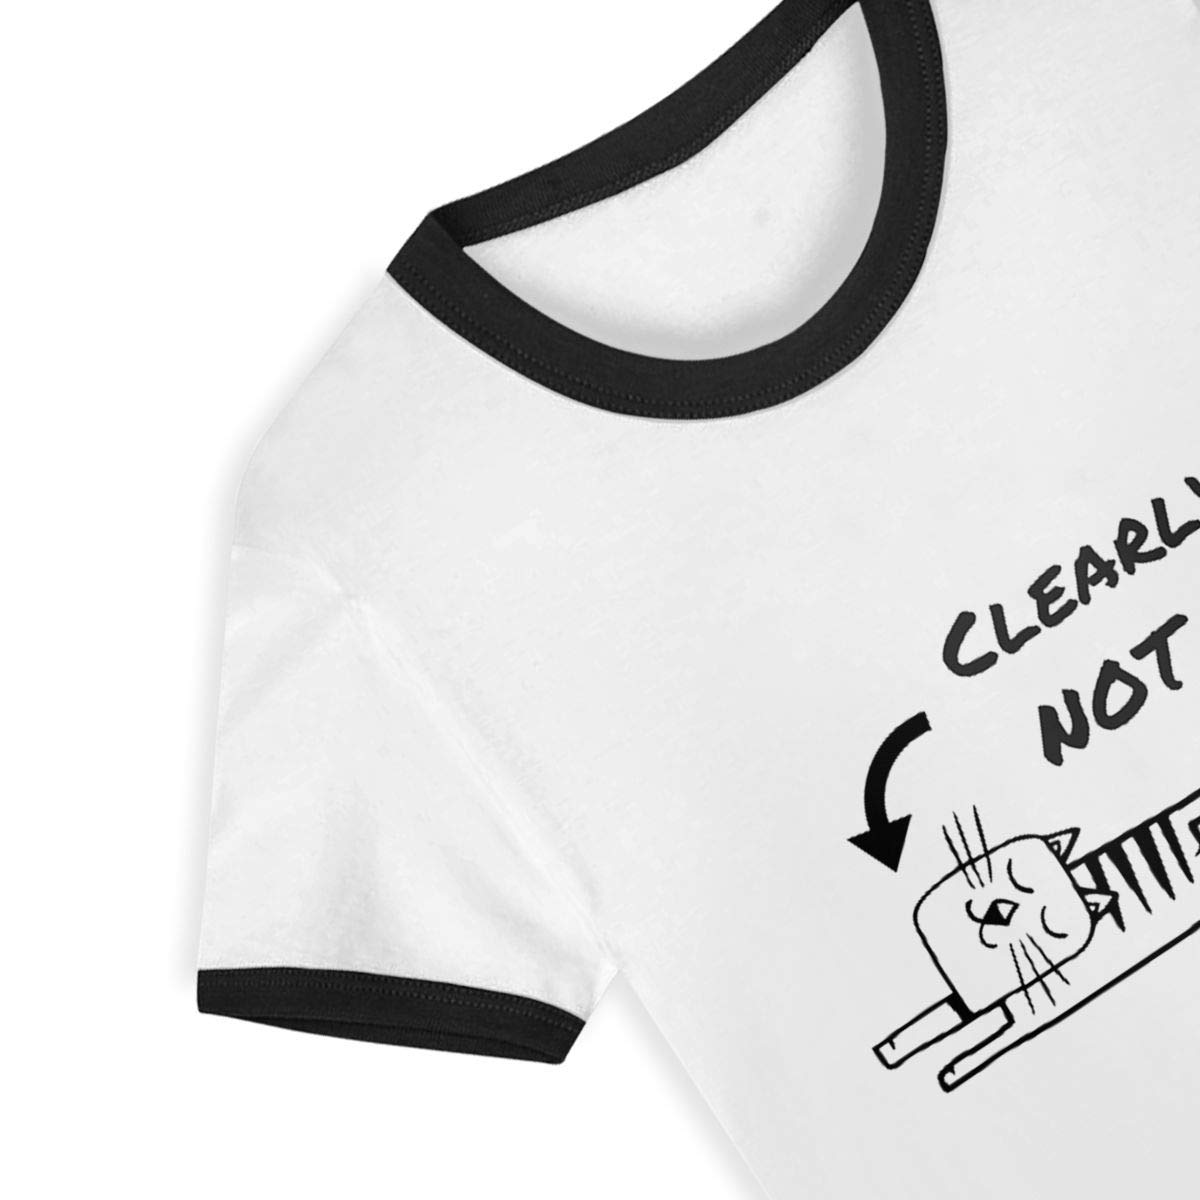 CY SHOP Clearly NOT Me Childrens Boys Girls Contrast Short Sleeve T-Shirt